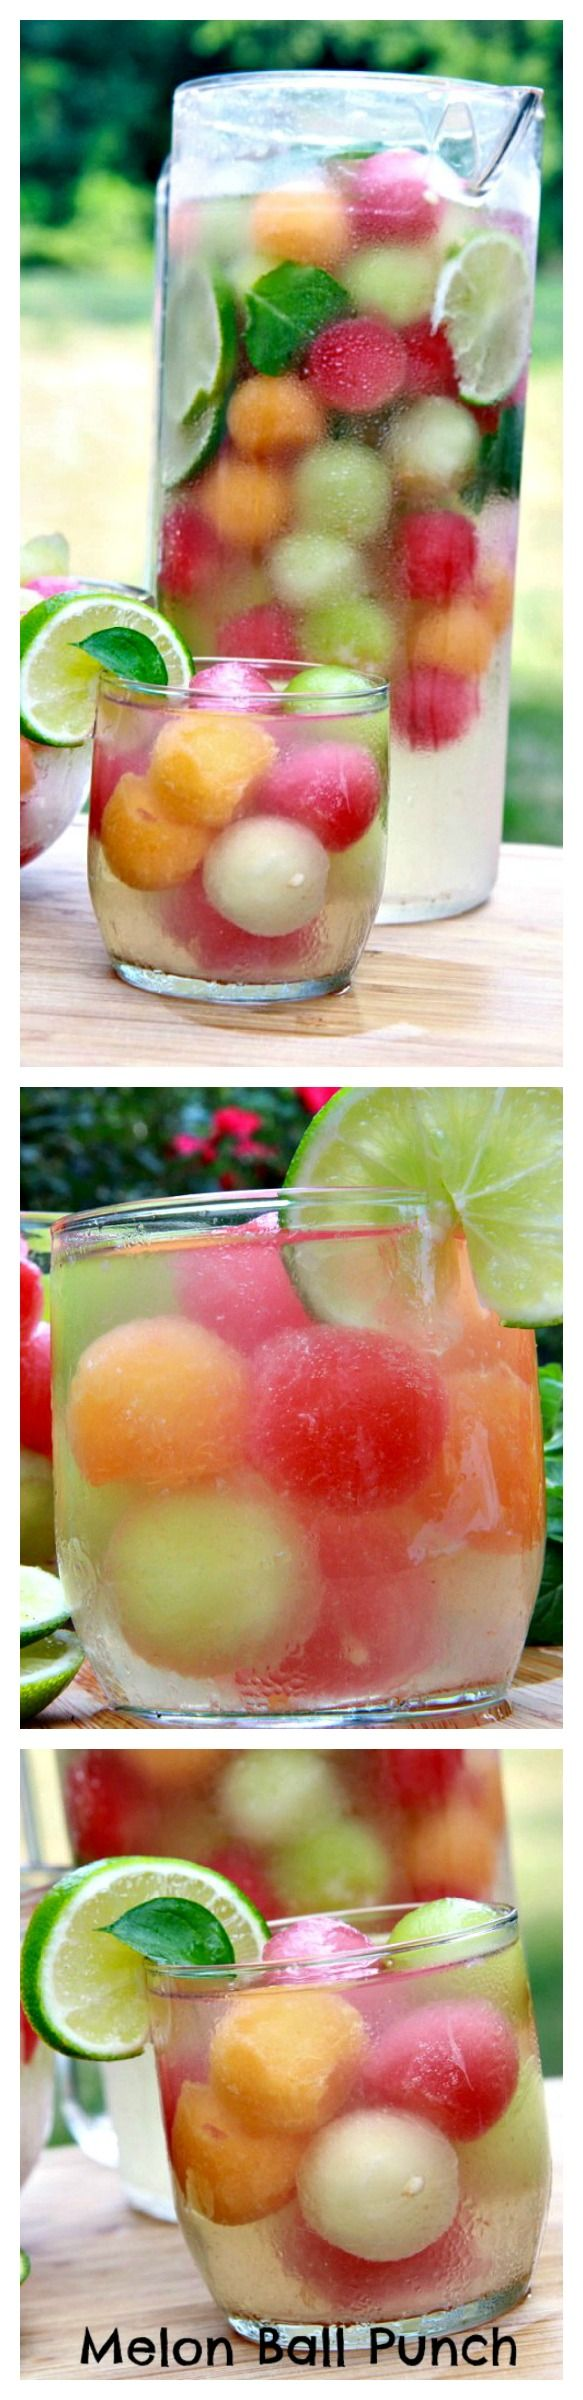 Refreshing Melon Ball Punch! we ❤ this!  moncheribridals.com #weddingsignaturedrinks #weddingcocktails